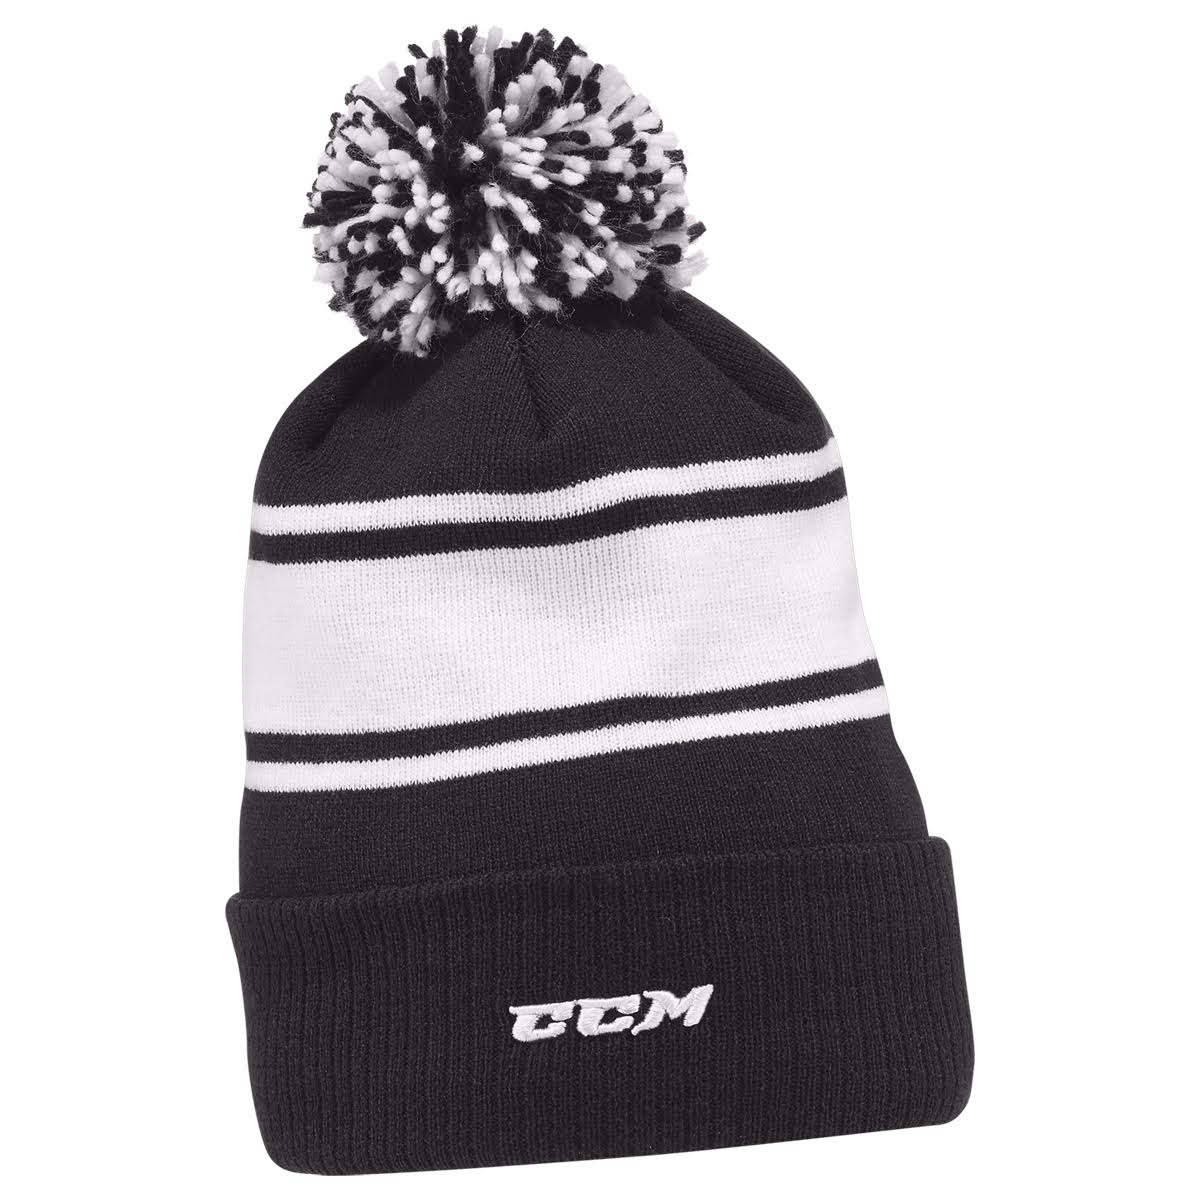 CCM Team Fleece Pom Knit Beanie - Adult - Black